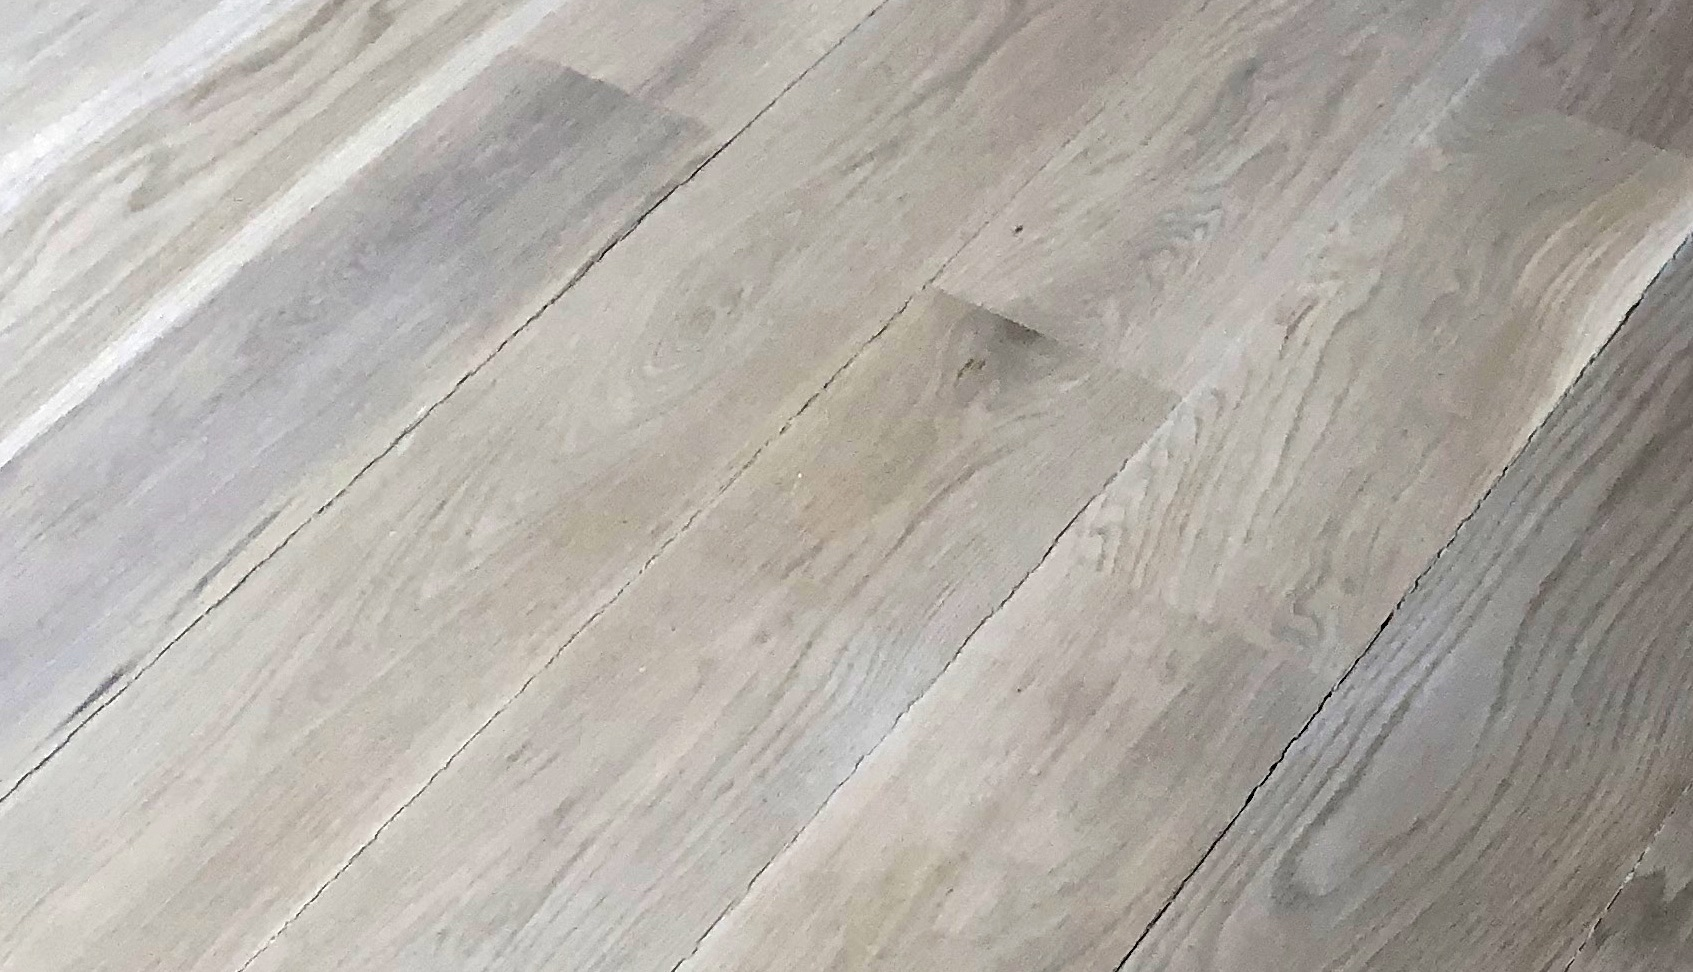 See how woodfiller cracks in between the boards?